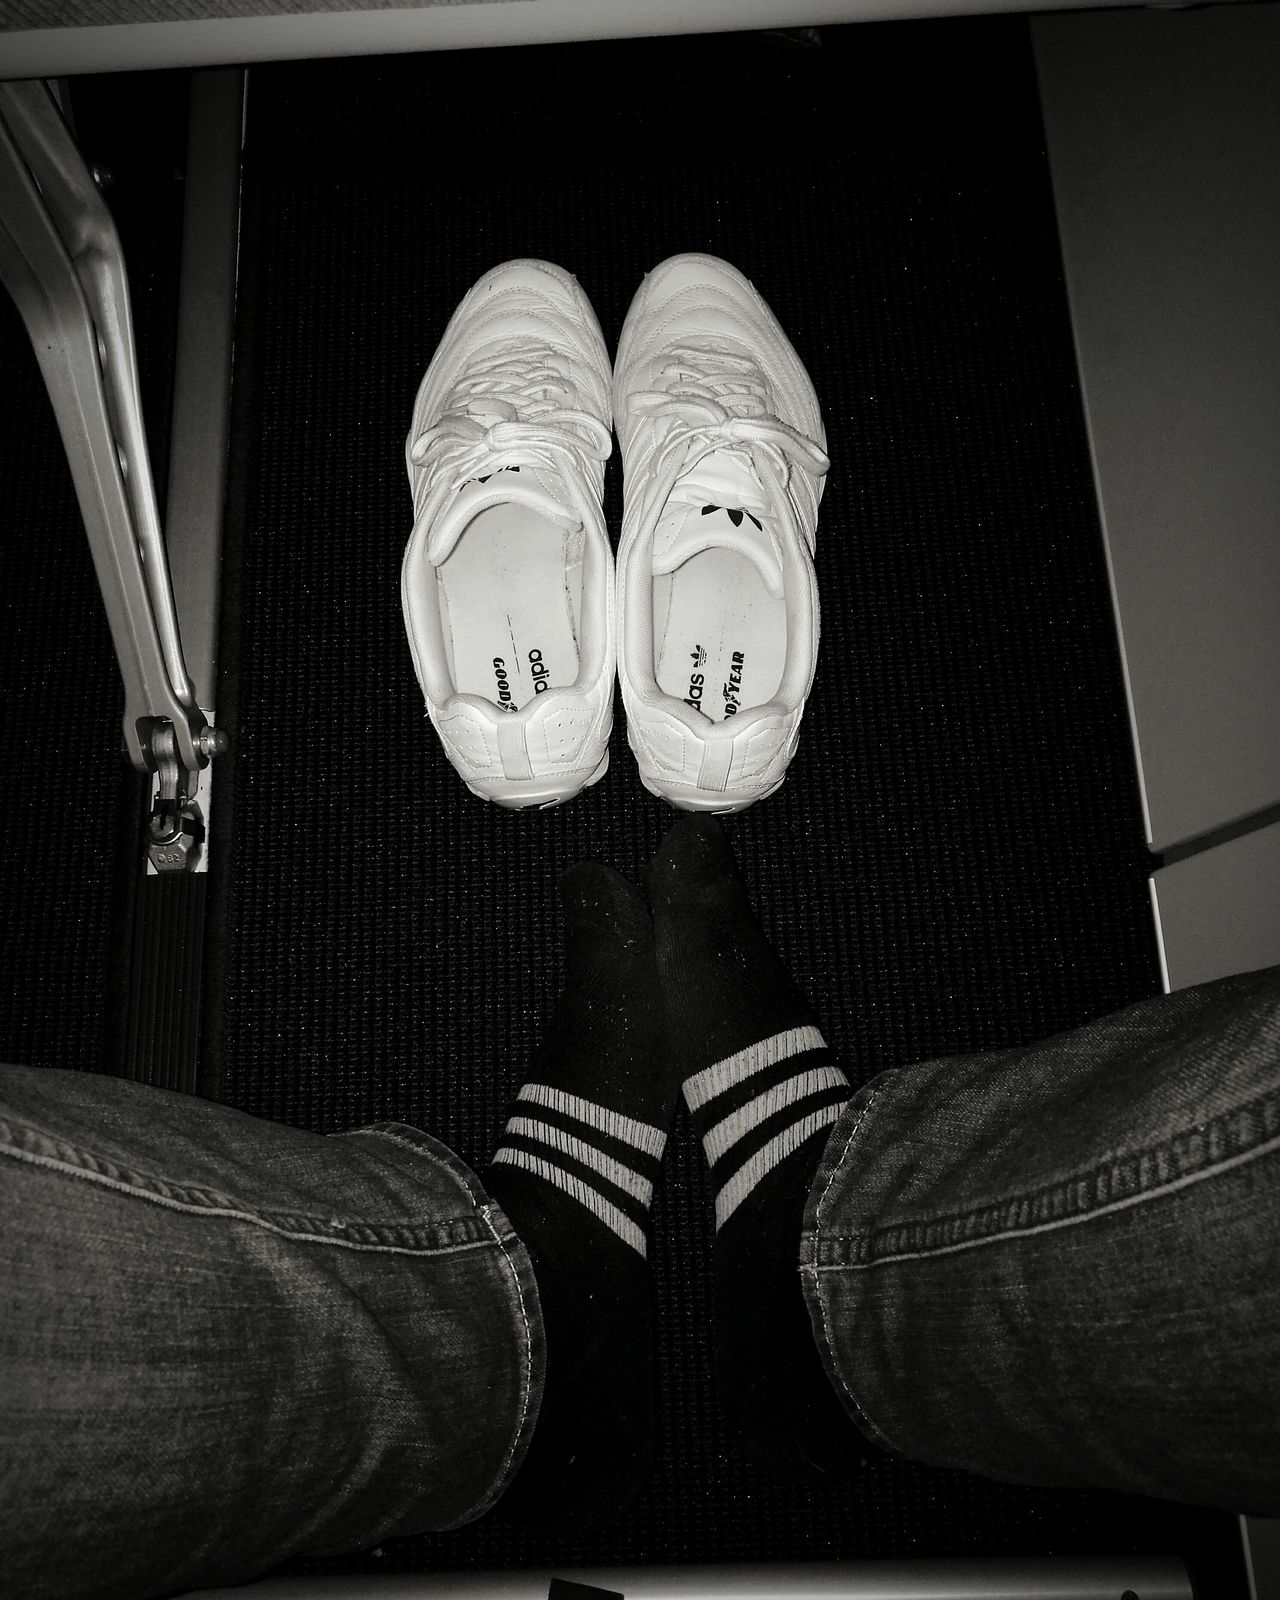 Adidas Shoe AdidasLover❤ Adidasoriginals Adidas Originals Adidas 4 Life On The Fly On The Airplane On The Air в самолете адидас кроссовки Кроссовочки